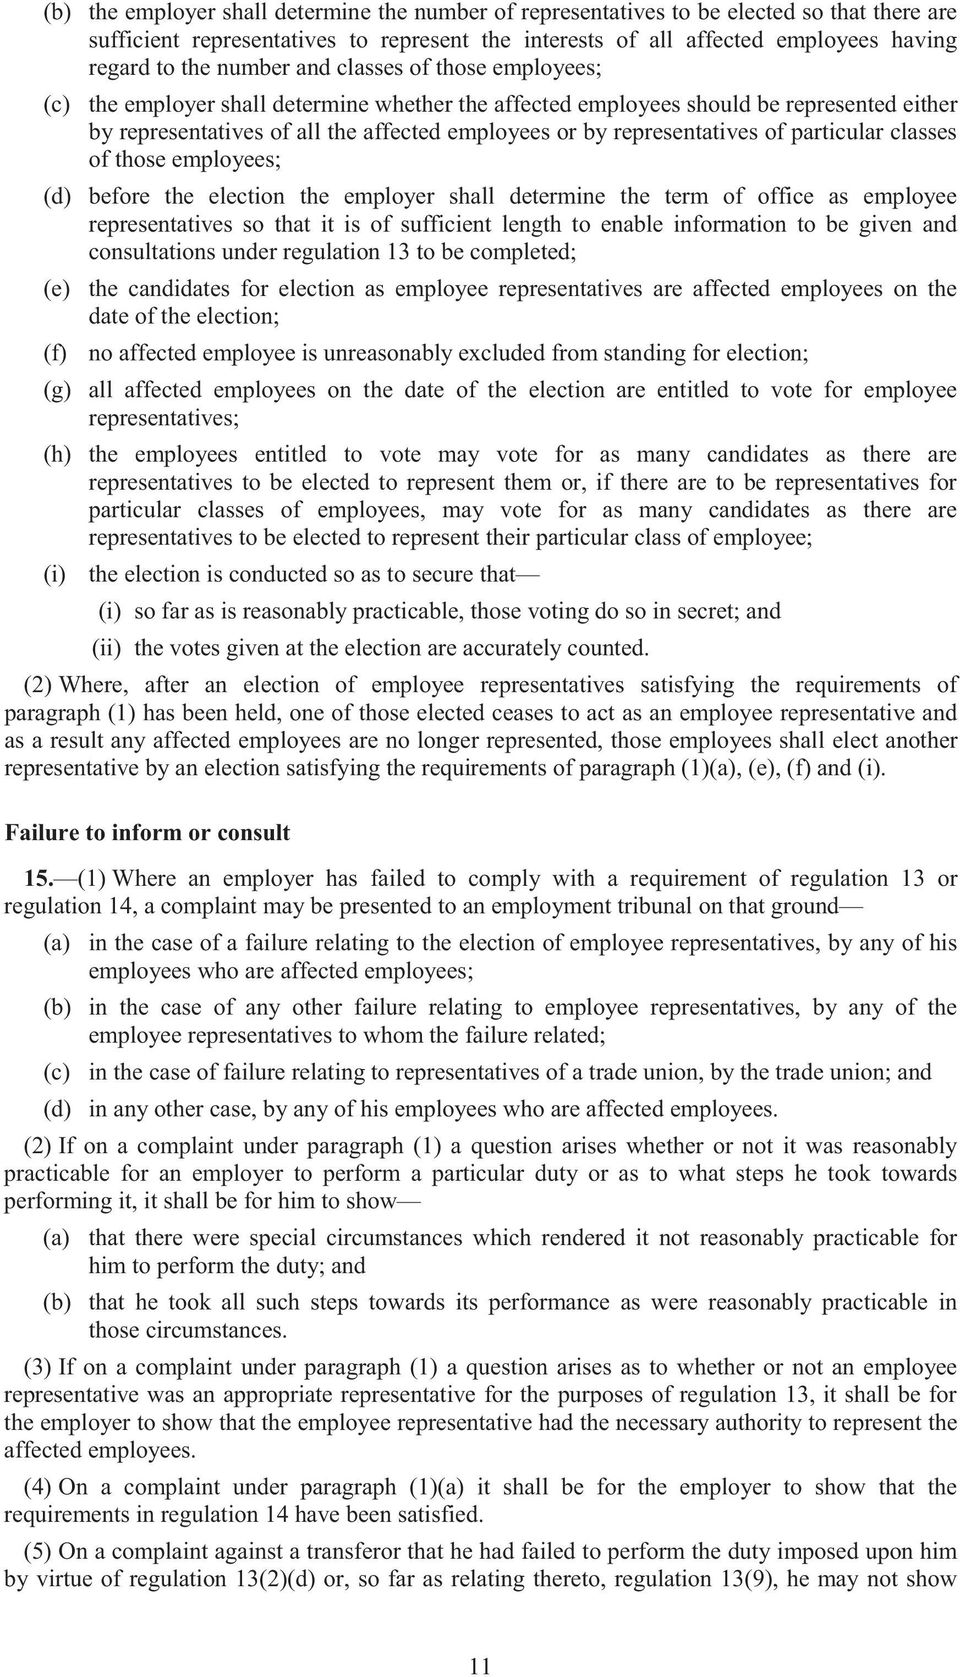 representatives of particular classes of those employees; (d) before the election the employer shall determine the term of office as employee representatives so that it is of sufficient length to